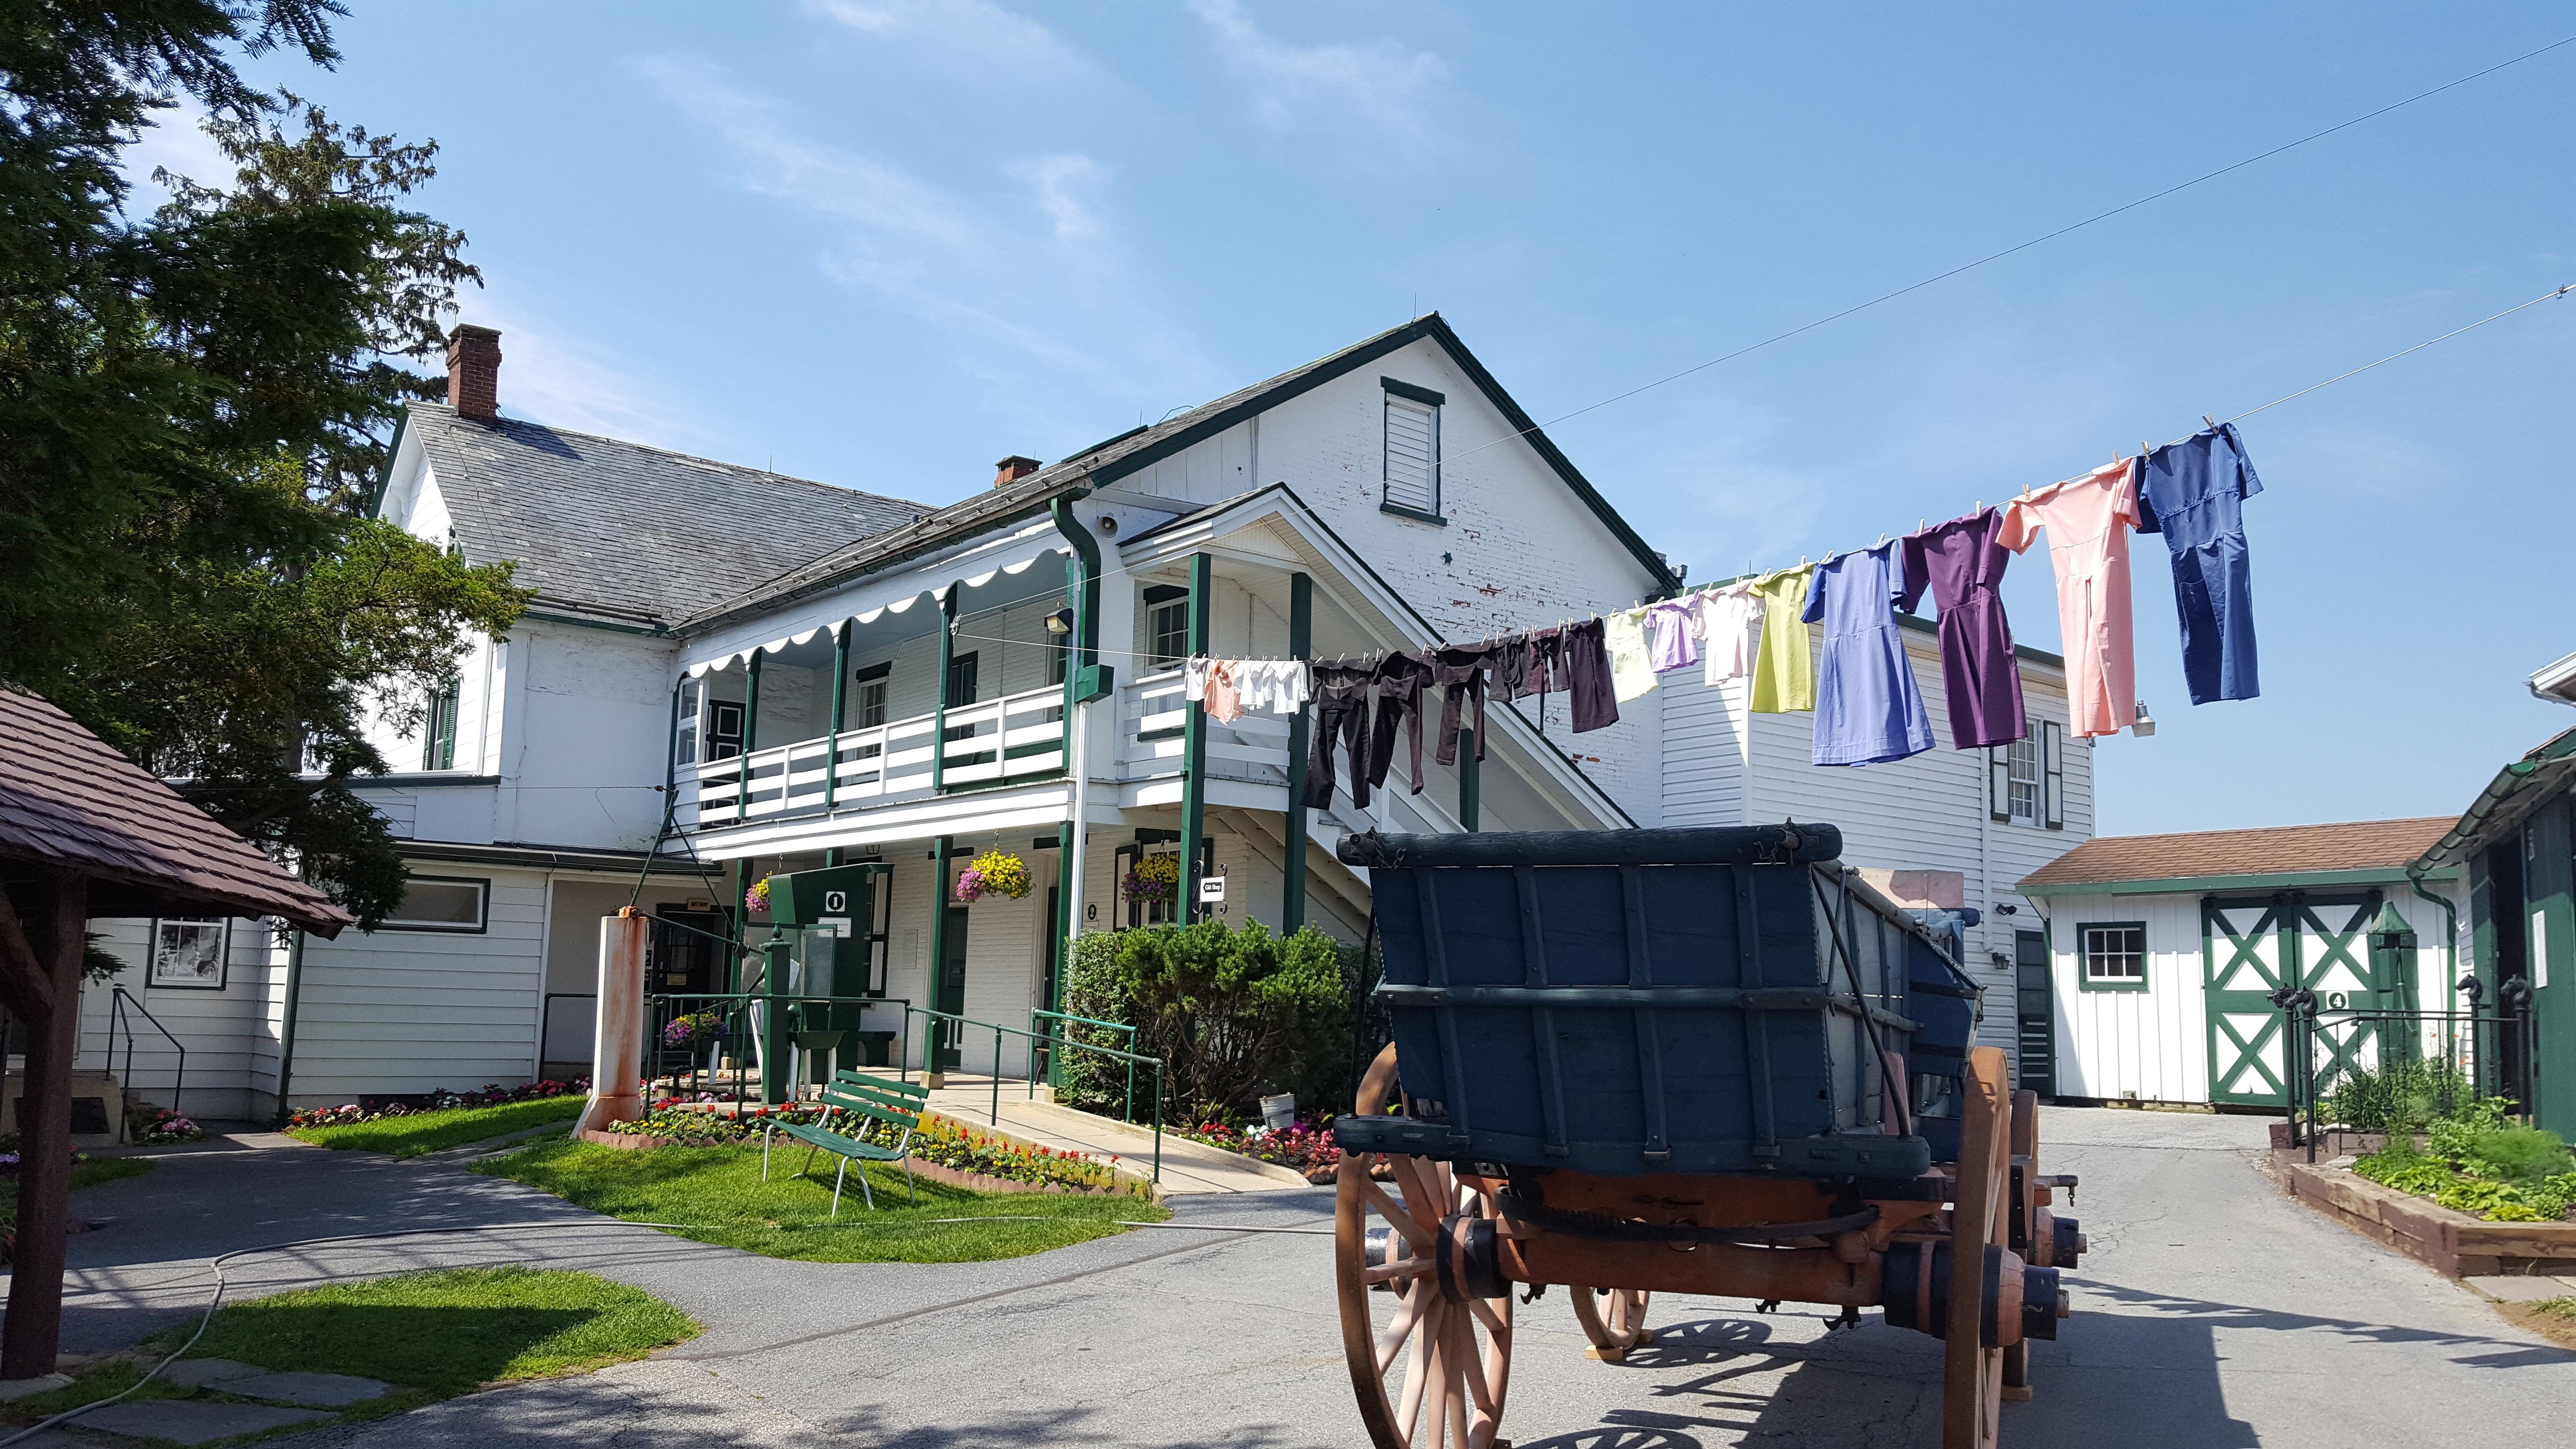 Amish attraction in Lancaster Touring the Amish Farm and